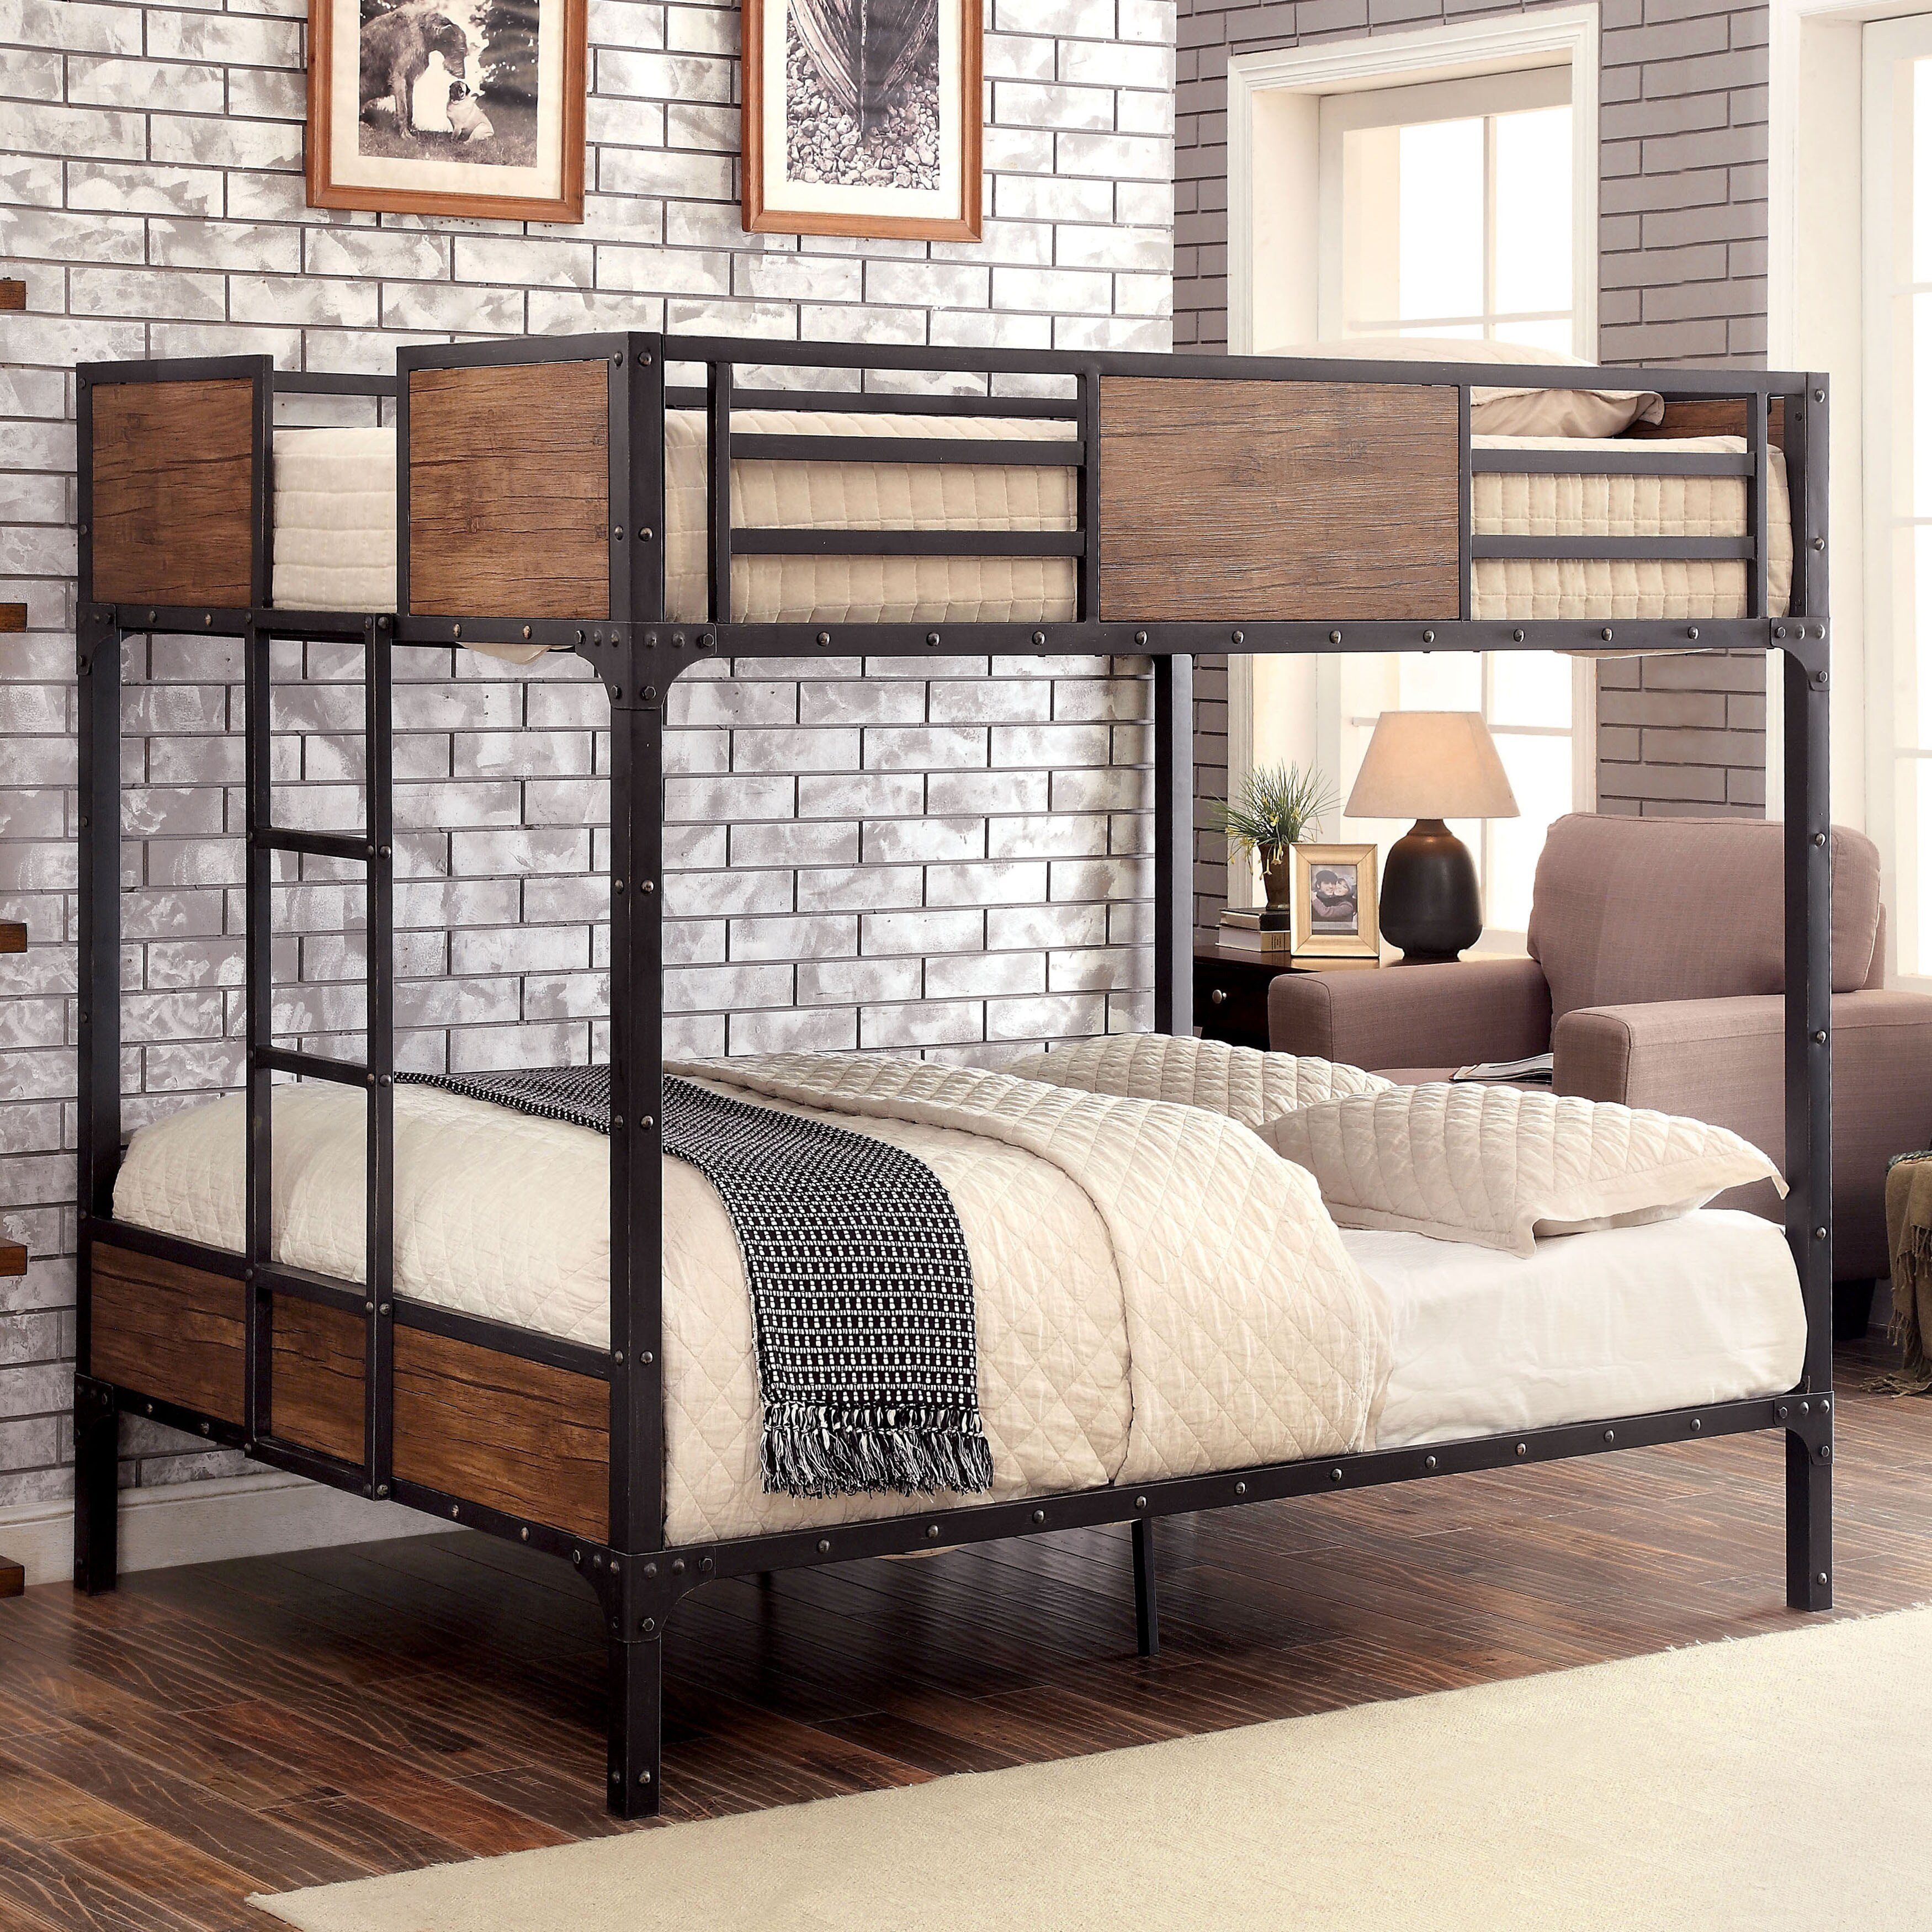 Loft Bed Bedroom Ideas Beautiful Inspirational Furniture America Markain Industrial Metal